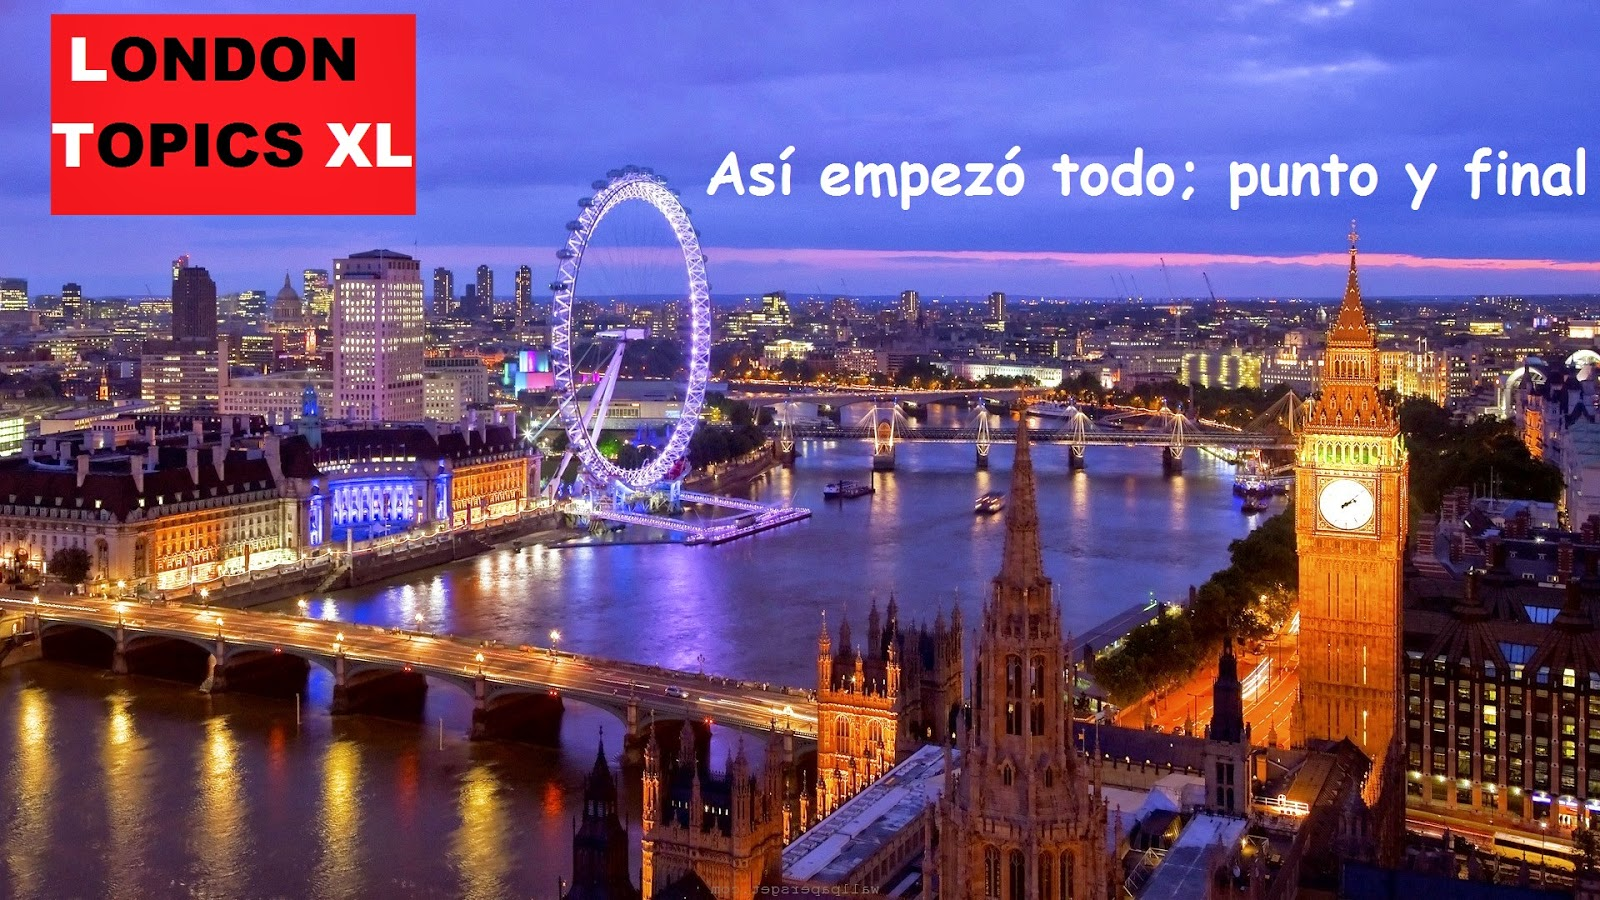 London Topics | Las historias de Alvi